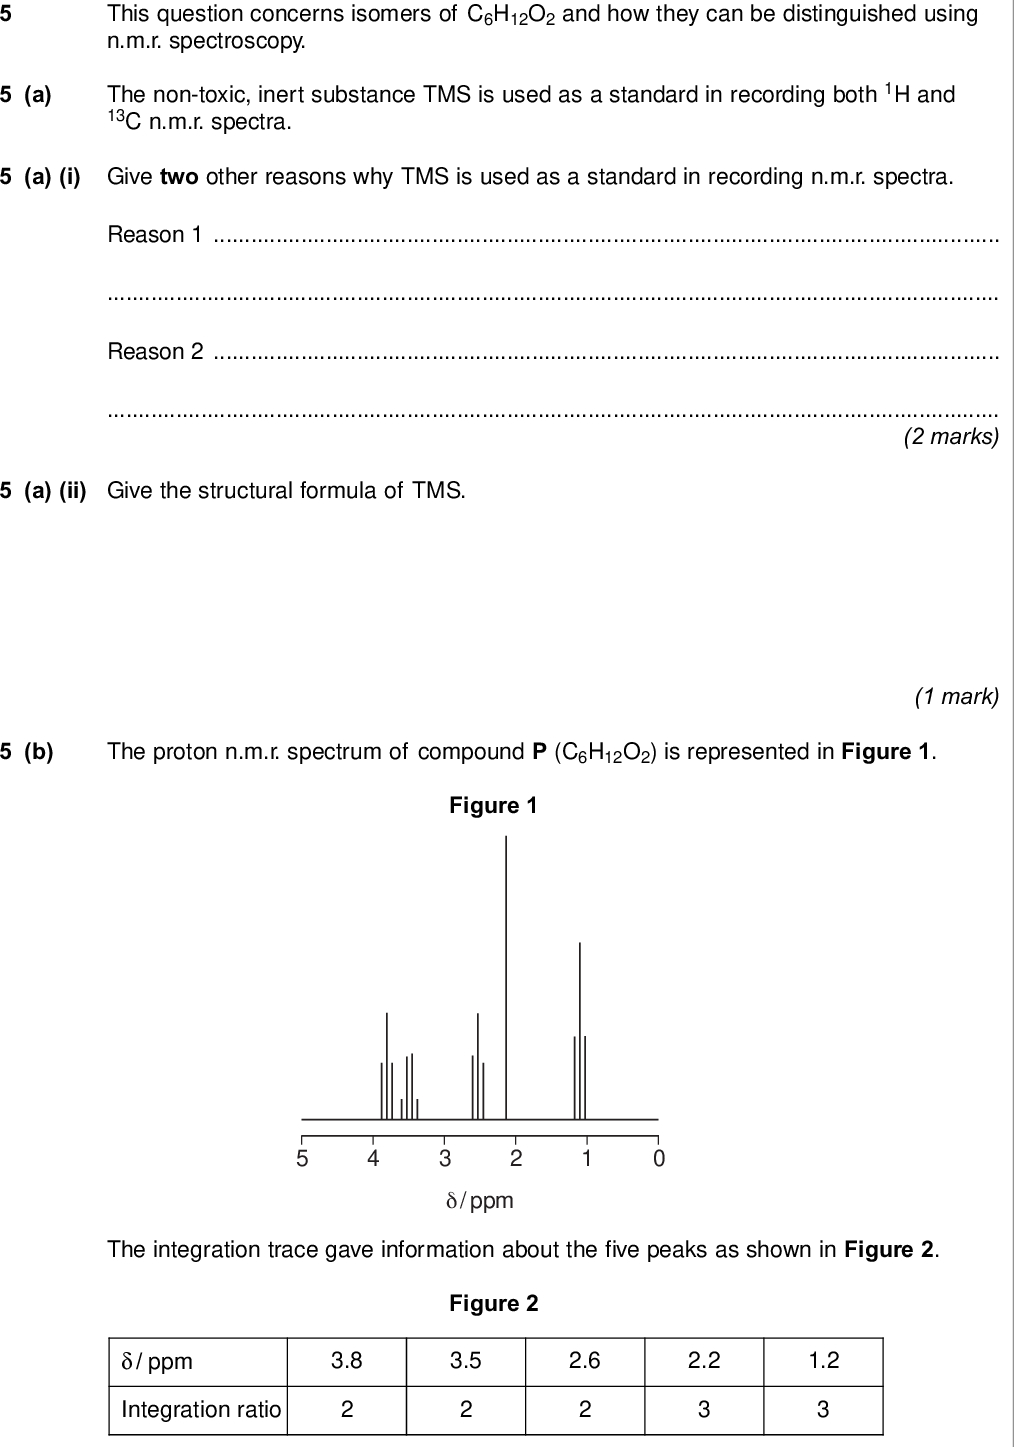 do not write outside the box a this question concerns isomers of c h o and how they can be distinguished using n m r spectroscopy the non toxic inert substance tms is used as a standard in recording both h and c n m r spectra a i give two other reasons why tms is used as a standard in recording n m r spectra reason reason marks a ii give the structural formula of tms b the proton n m r spectrum of compound p c h o is represented in figure figure mark ppm the integration trace gave information about the five peaks as shown in figure figure ppm integration ratio wmp jan chem do not write outside the box b i use table on the data sheet figure and figure to deduce the structural fragment that leads to the peak at b ii use table on the data sheet figure and figure to deduce the structural fragment that leads to the peaks at and mark b iii use table on the data sheet figure and figure to deduce the structural fragment that leads to the peaks at and mark b iv deduce the structure of p question continues on the next page mark mark turn over wmp jan chem do not write outside the box c these questions are about different isomers of p c h o c i draw the structures of the two esters that both have only two peaks in their proton n m r spectra these peaks both have an integration ratio of ester ester c ii draw the structure of an optically active carboxylic acid with five peaks in its c n m r spectrum marks mark c iii draw the structure of a cyclic compound that has only two peaks in its c n m r spectrum and has no absorption for c o in its infrared spectrum mark wmp jan chem turn over for the next question do not write on this page answer in the spaces provided turn over wmp jan chem